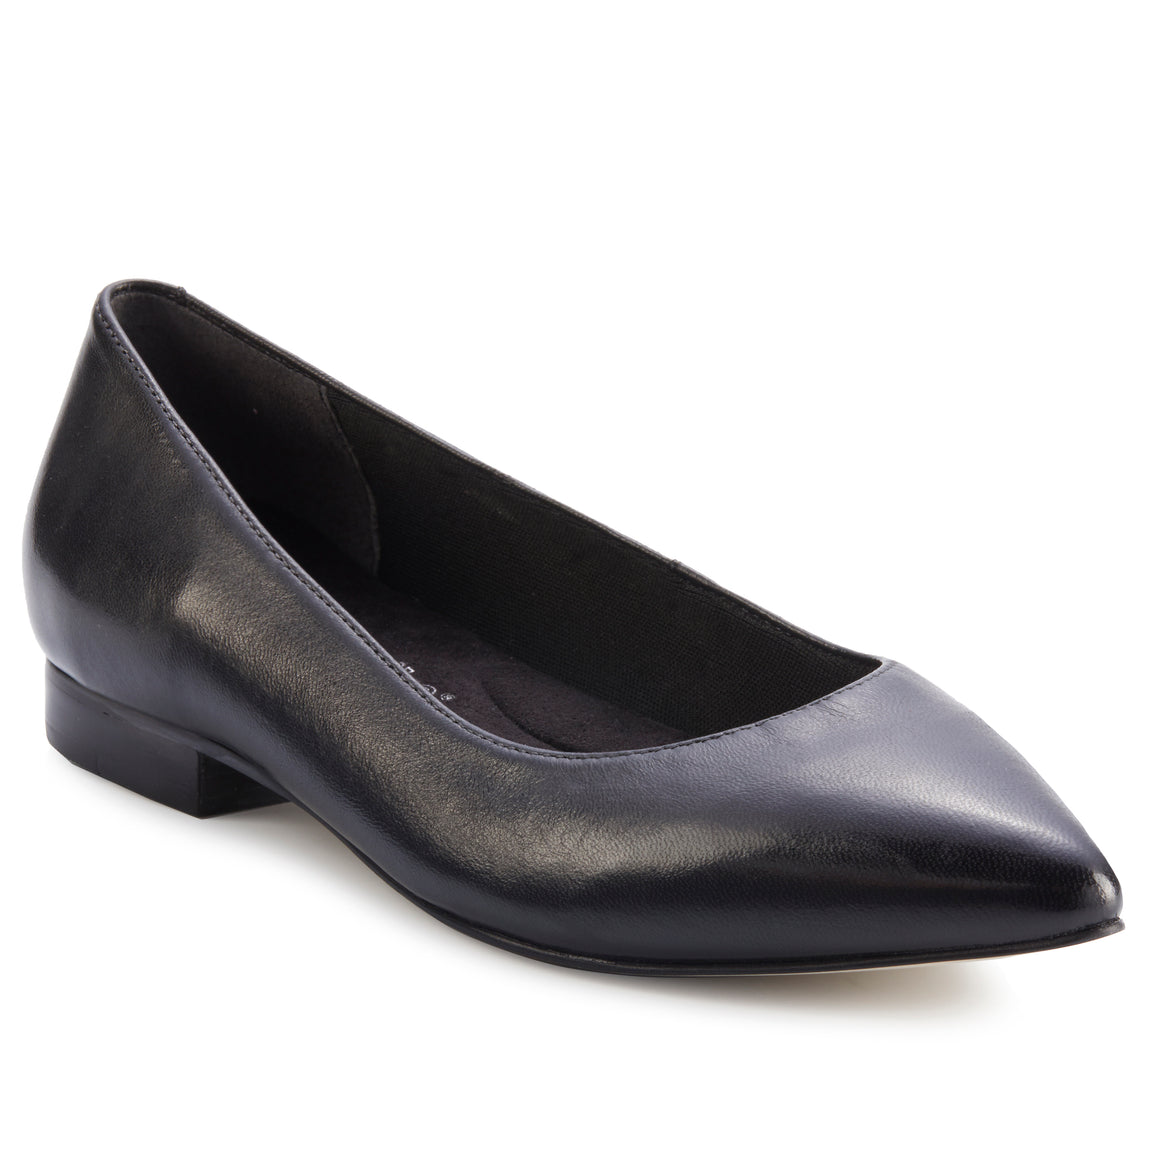 Women's Comfort Flat- Reece in Black Leather